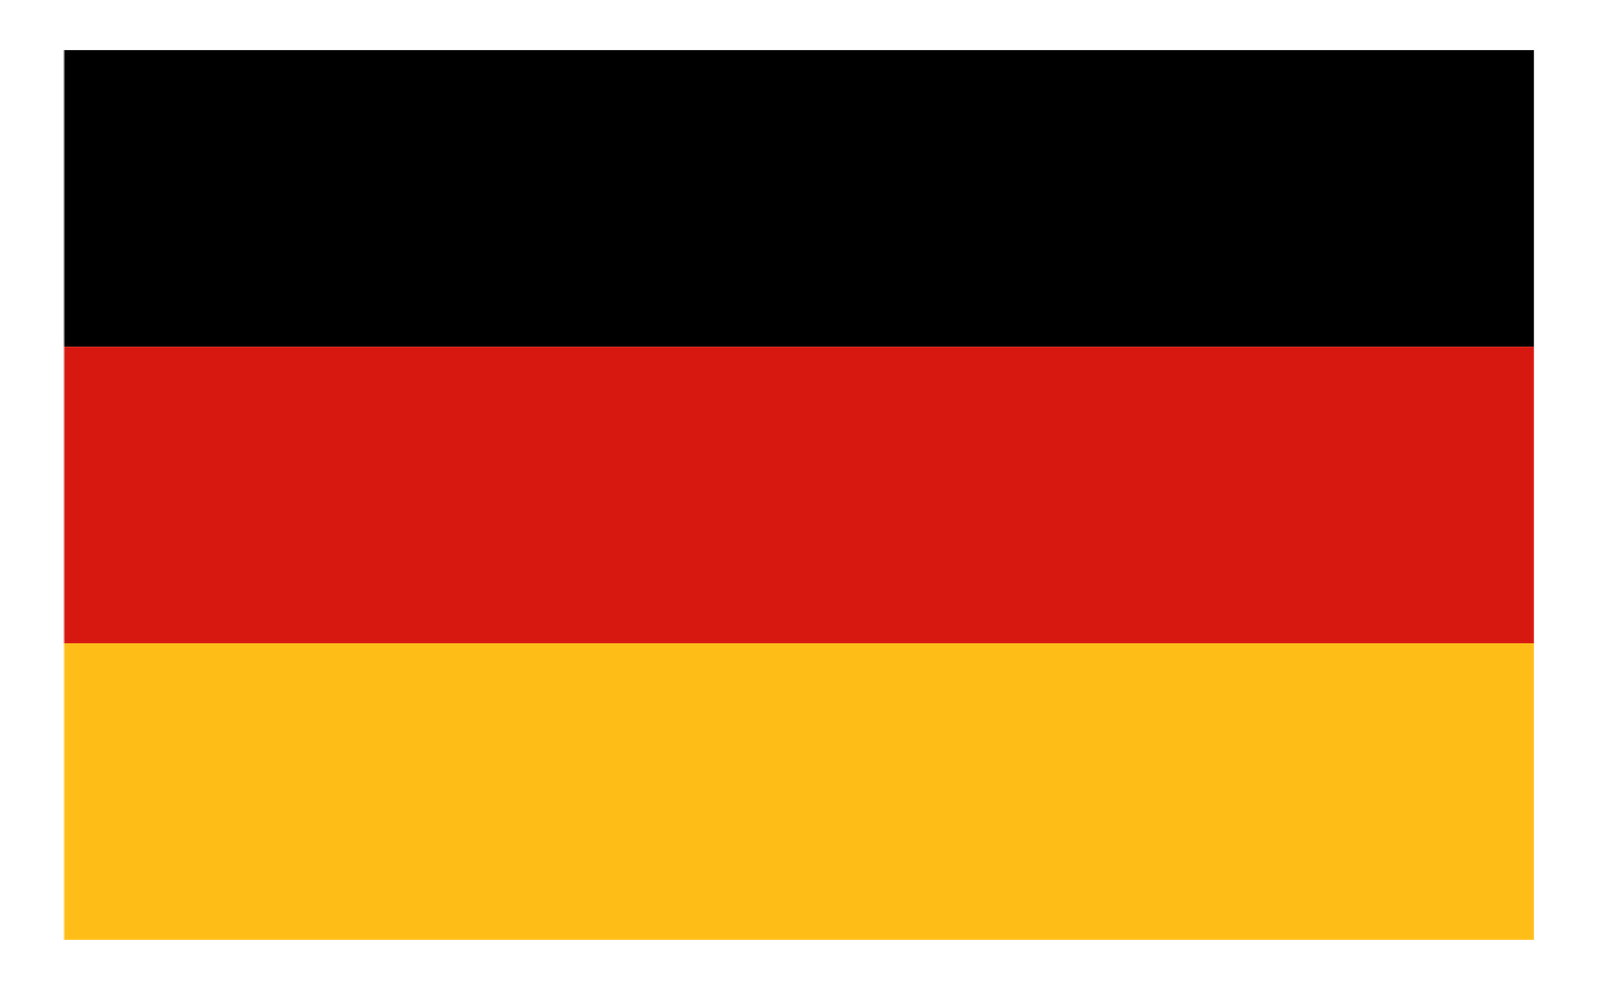 German, deutsch, flag colors #48867.